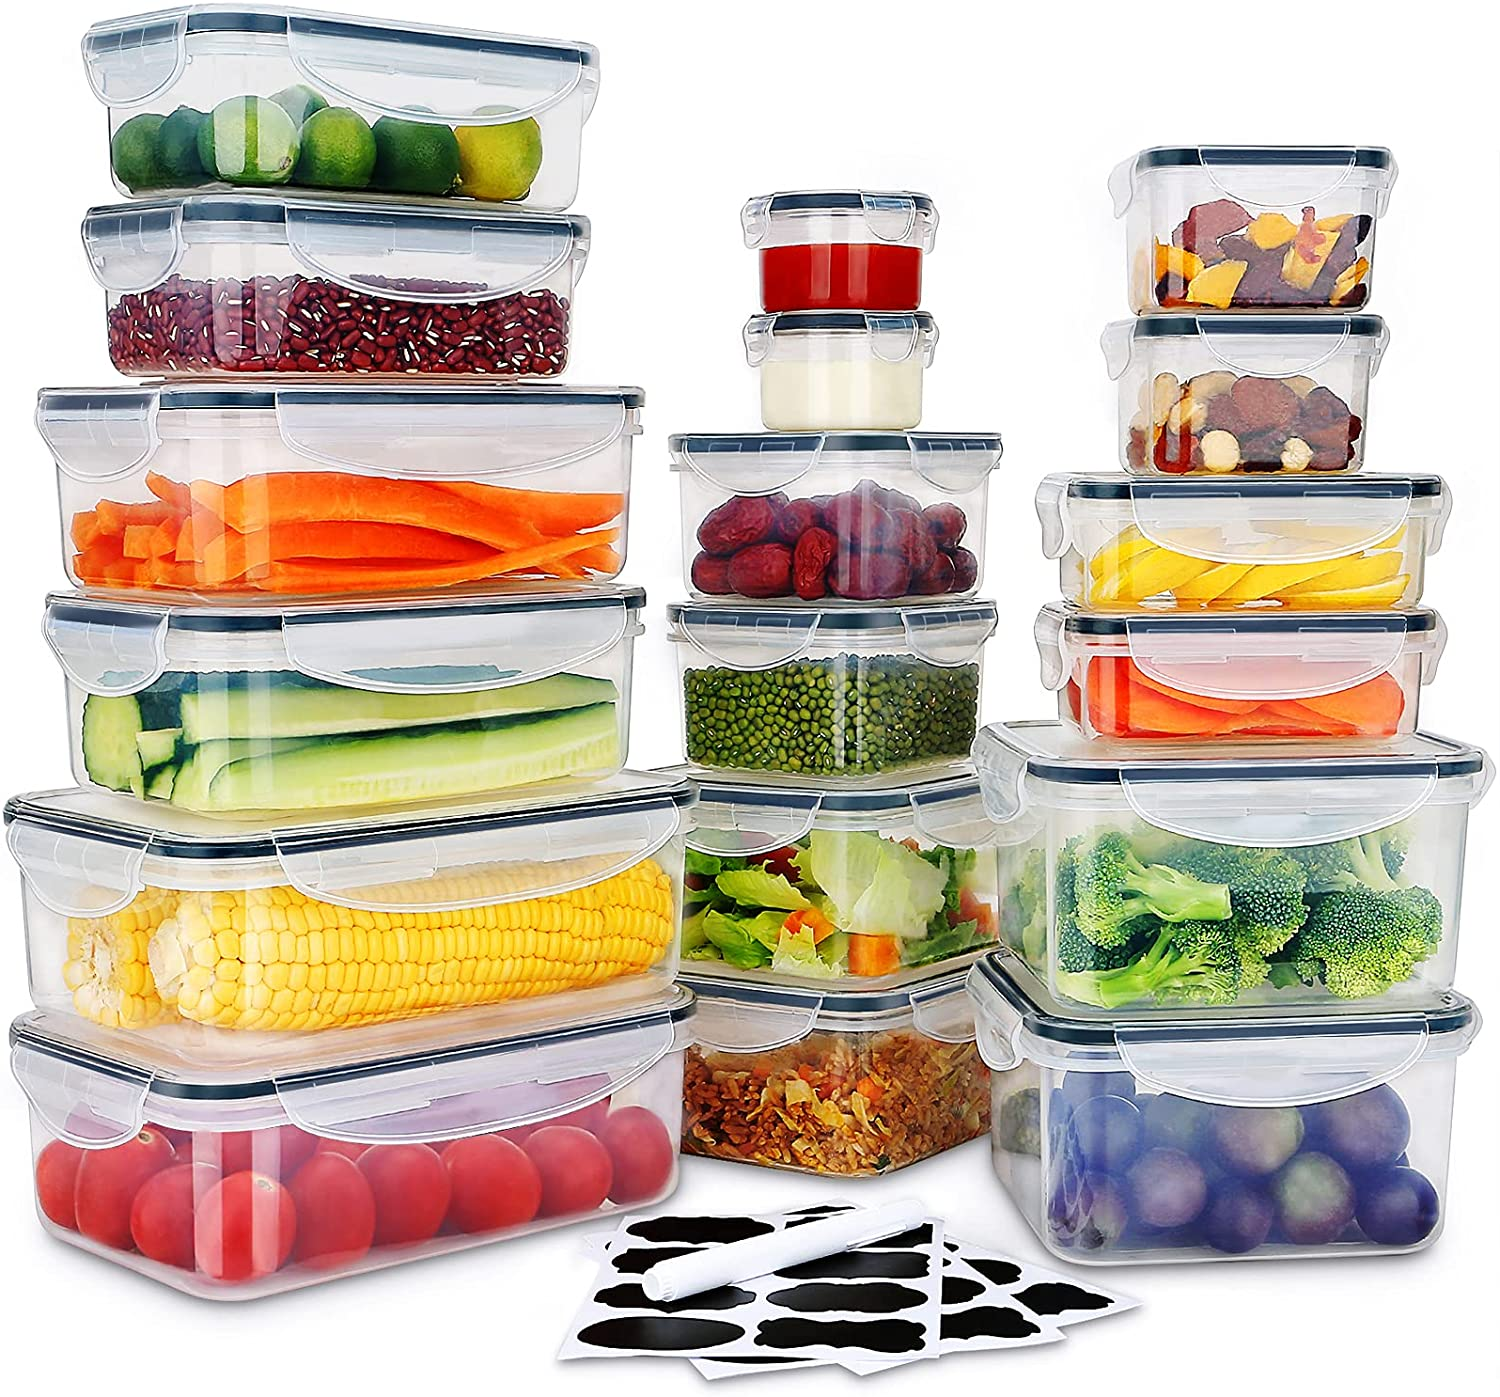 36 PCS Food Storage Containers, Stackable Plastic Containers with Lids - 100% Airtight & BPA-Free & Microwave, Dishwasher Safe Food Storage with Chalkboard Labels & Marker